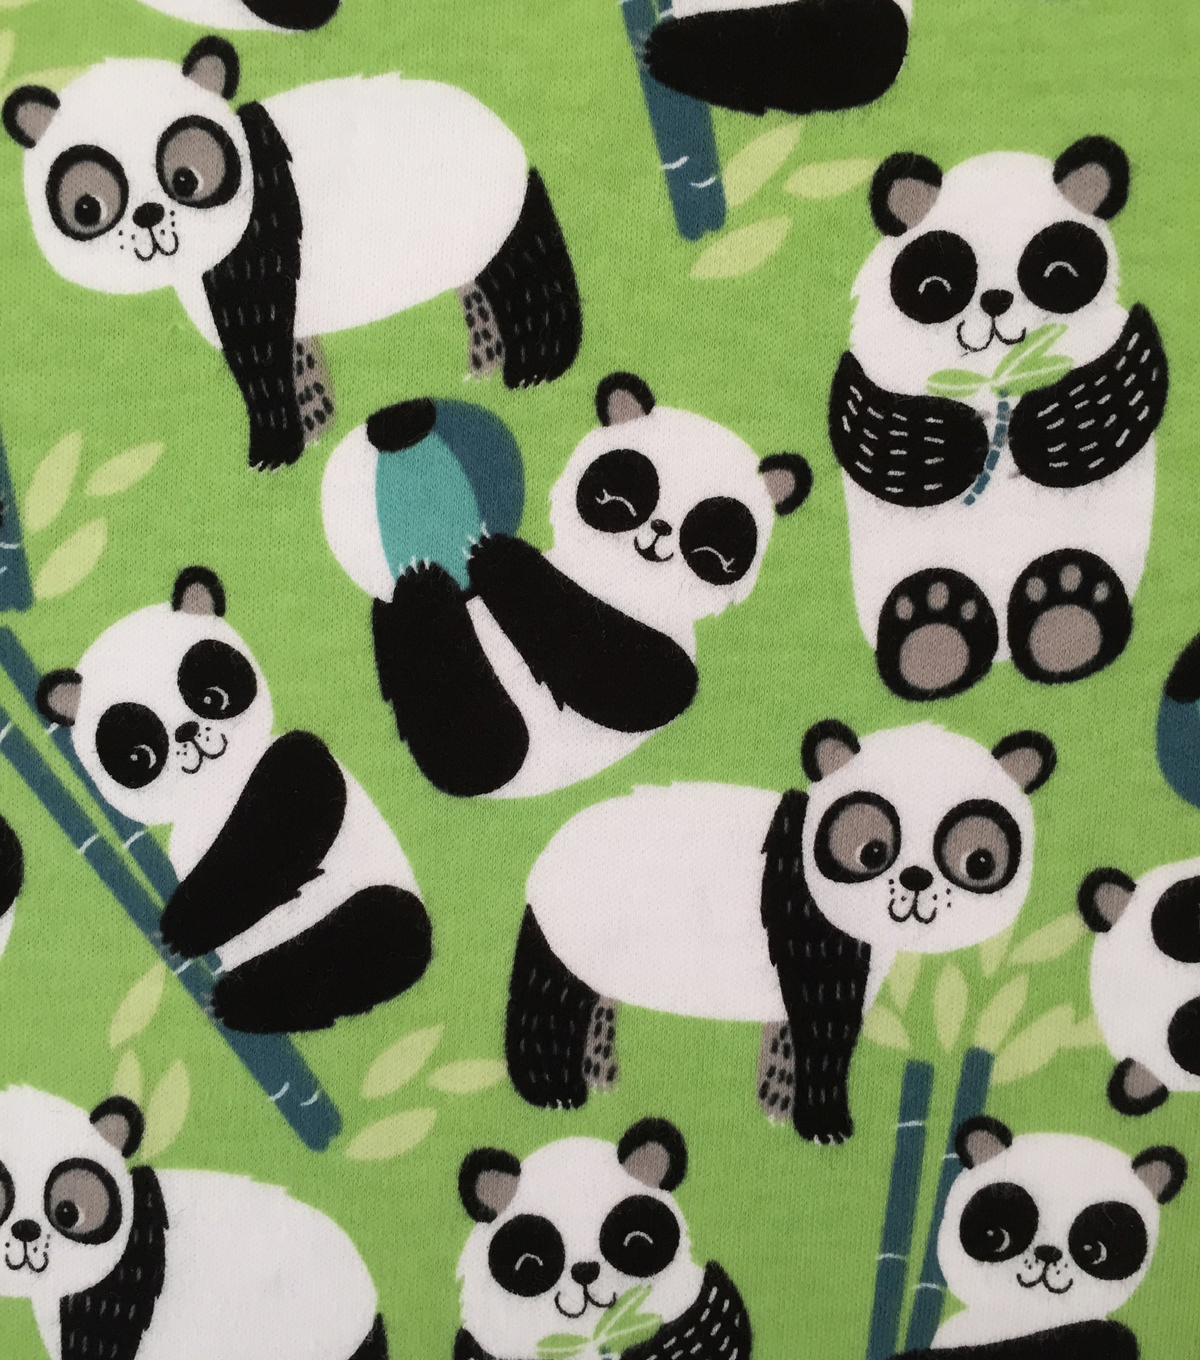 Doodles Cotton Fabric -Cuddly Cubs